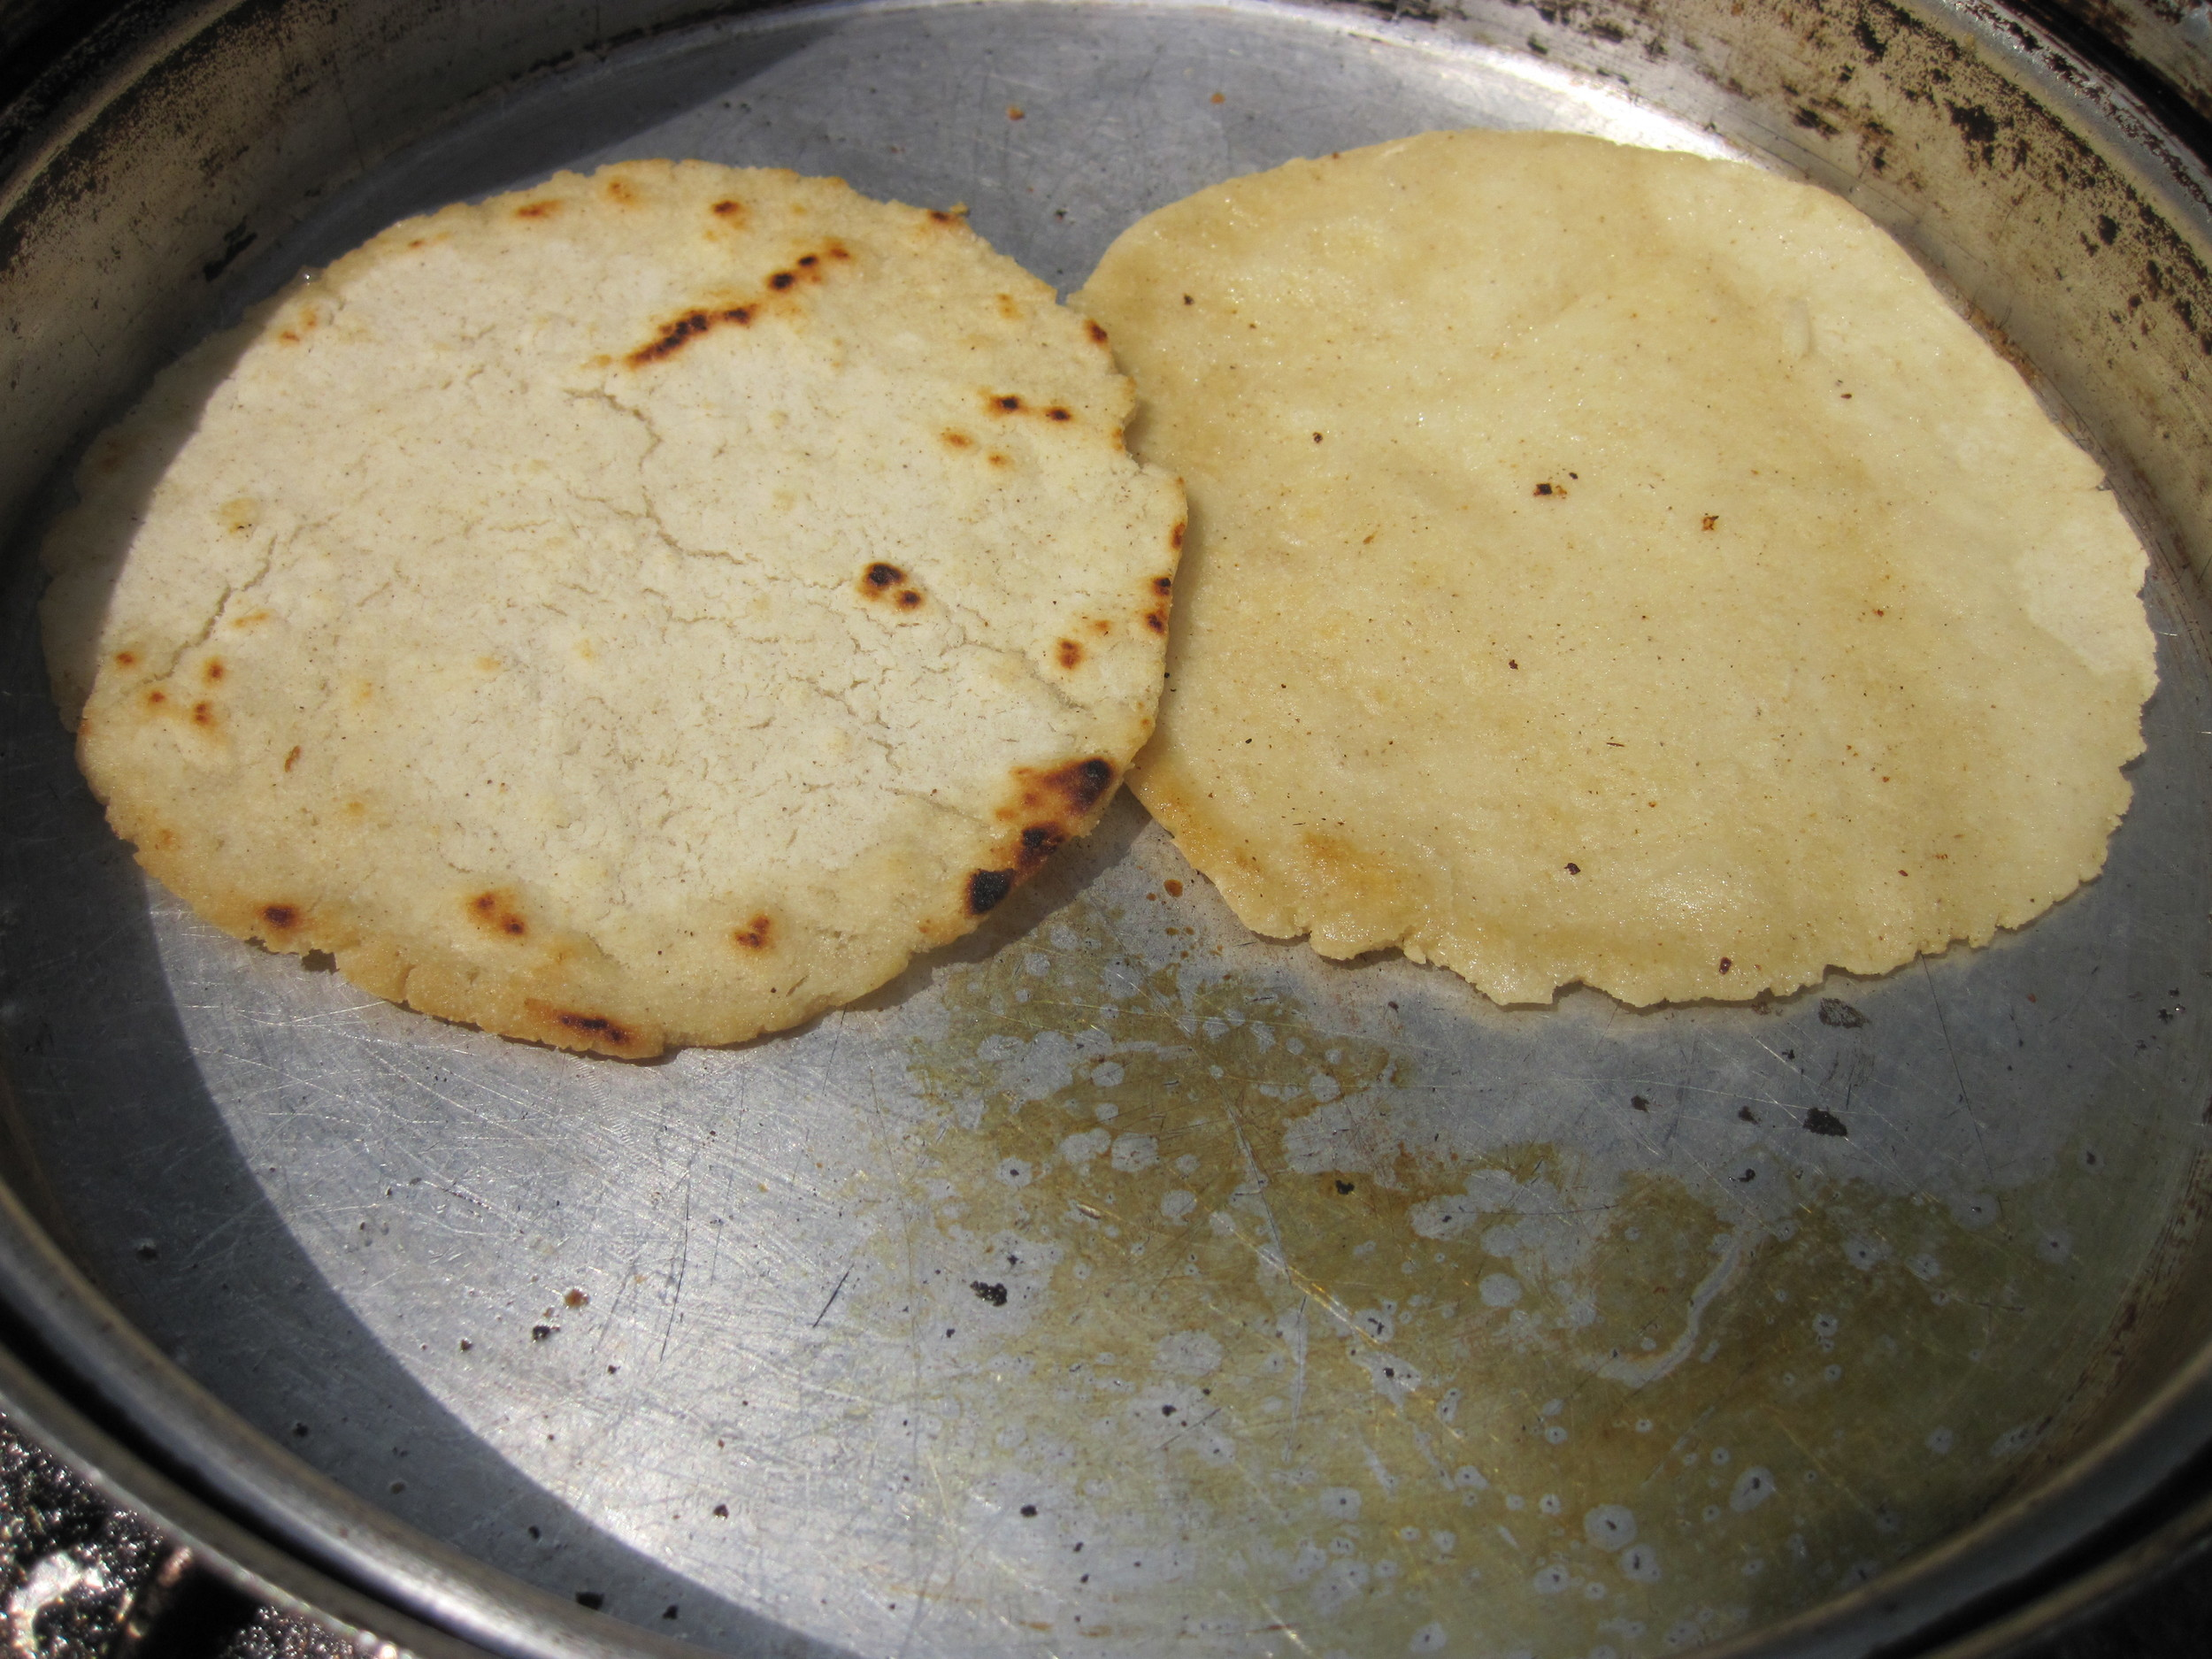 Fresh tortillas cooking on the camp stove.